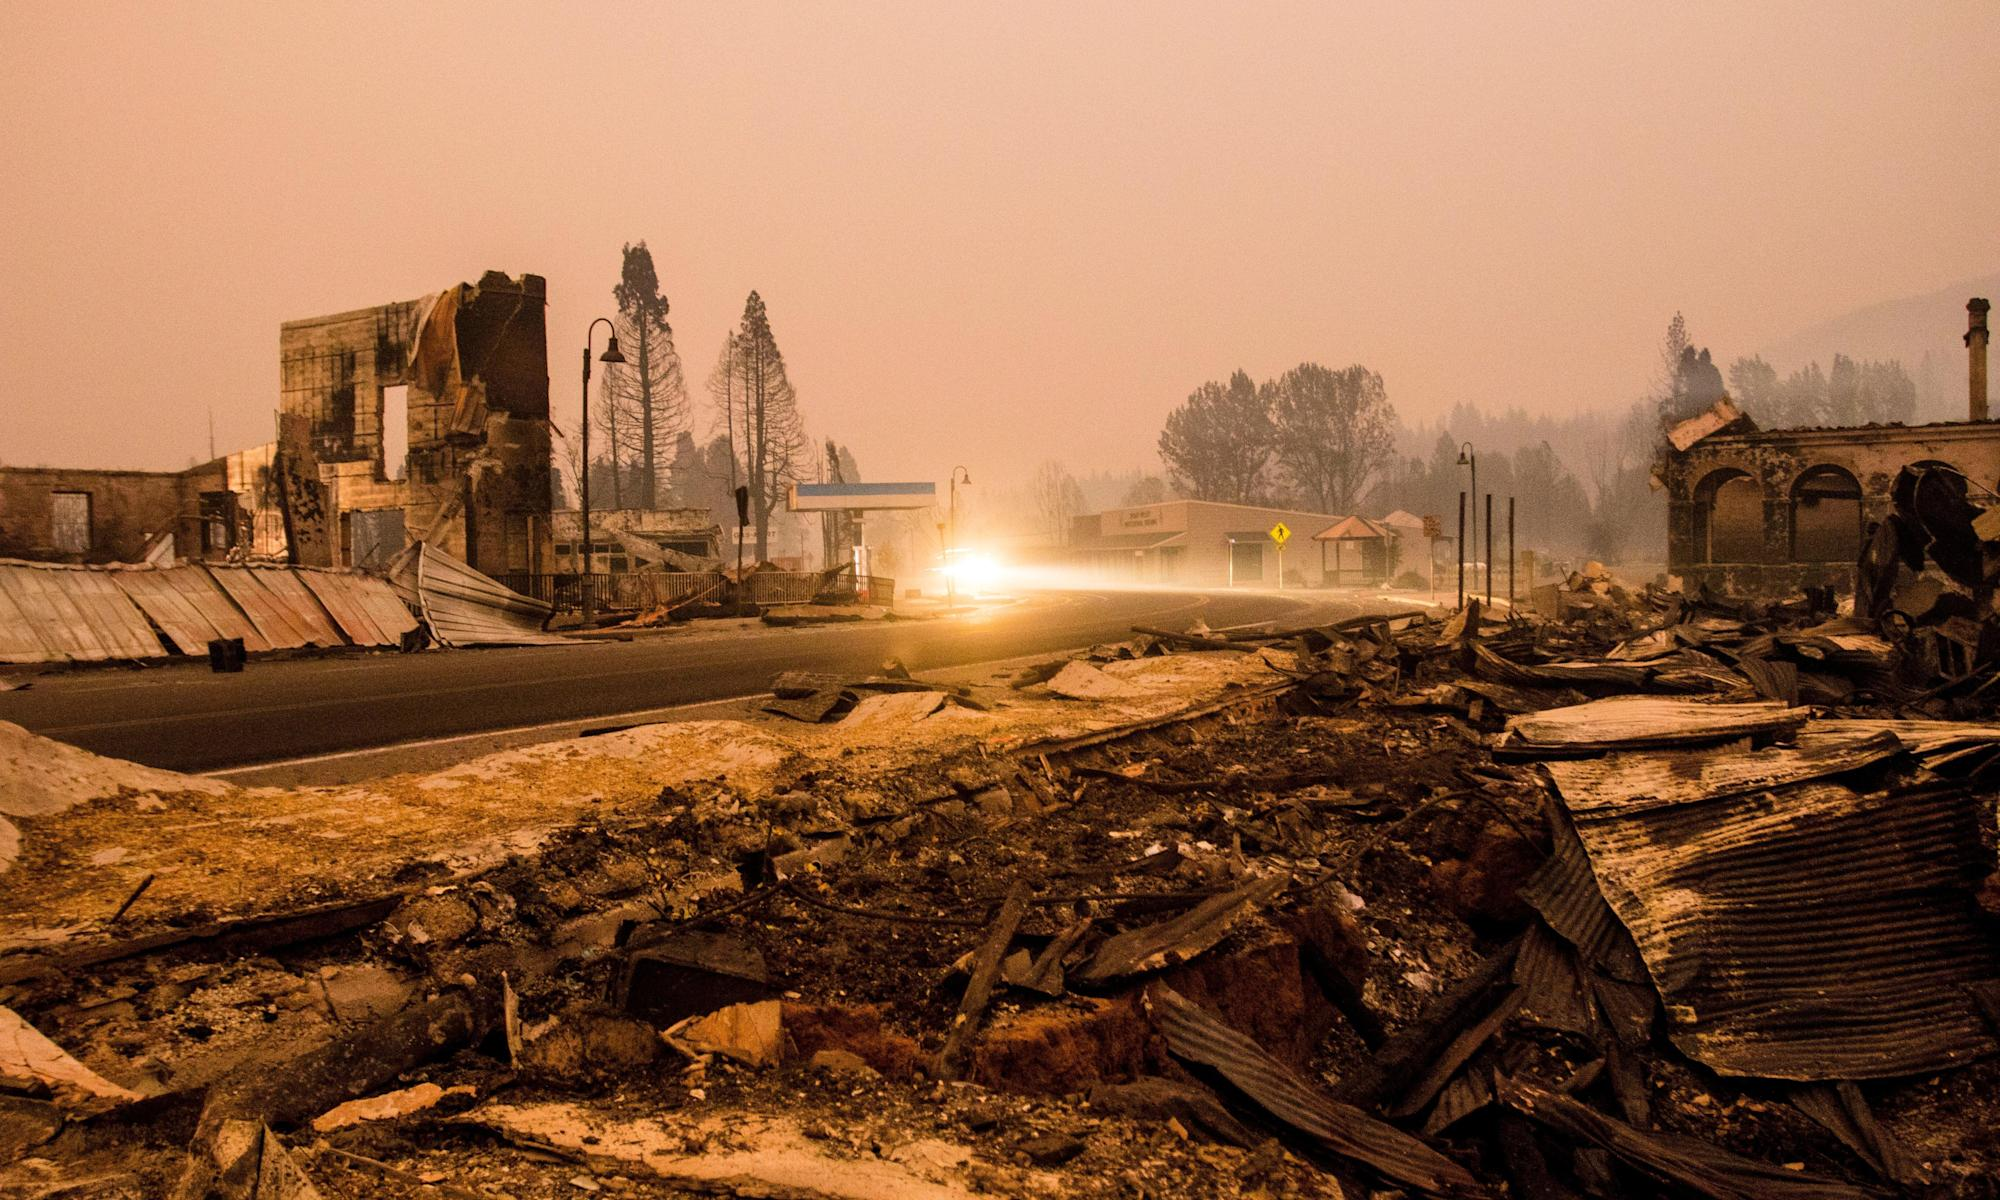 Thunderstorms could worsen California's giant Dixie fire, officials warn